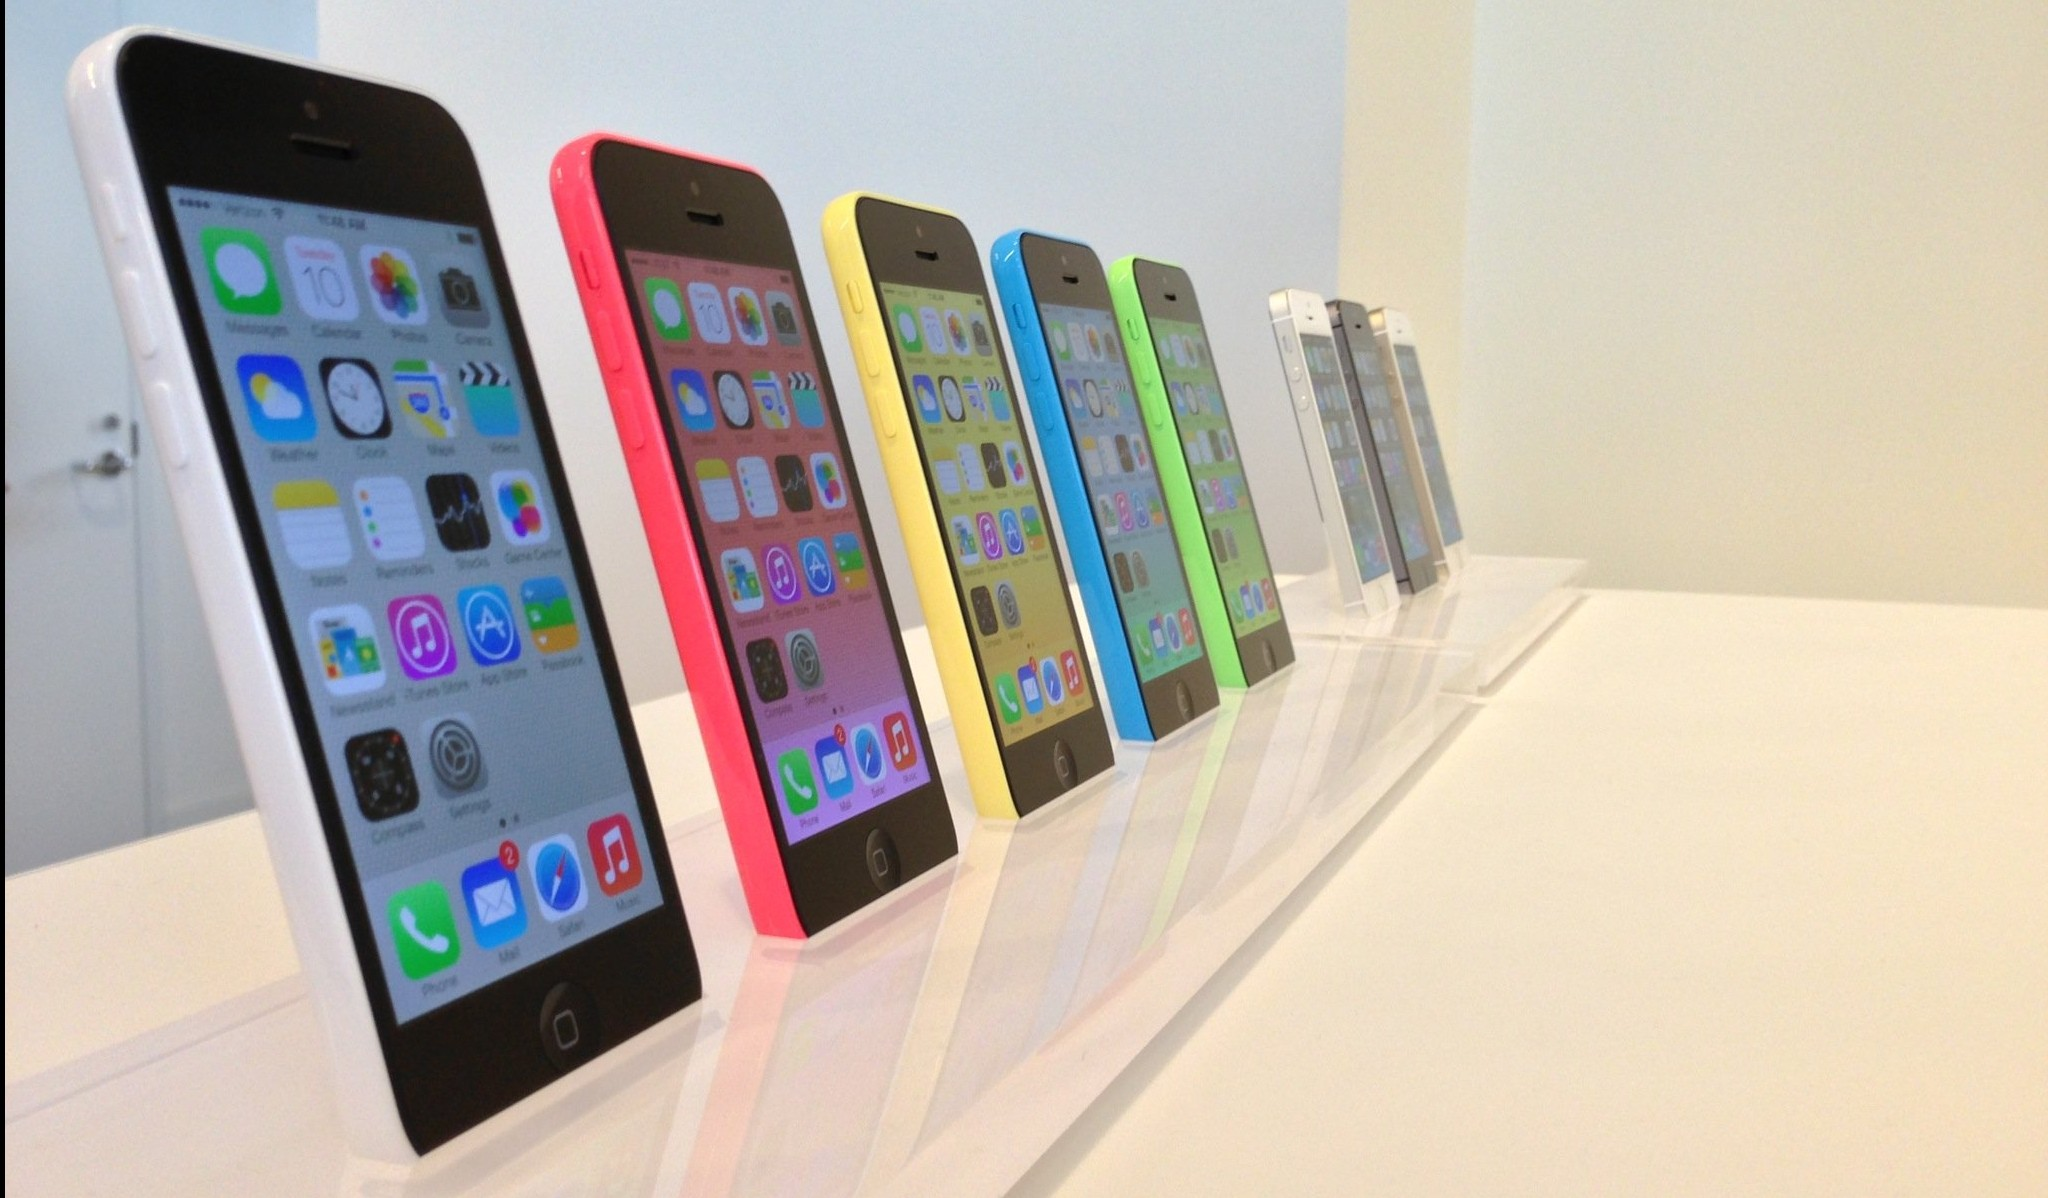 The newest iPhone offerings from Apple, Inc. are pictured following the tech giant's event in Cupertino, Tuesday, September 10th, 2013. Apple unveiled the iPhone 5S and iPhone 5C.